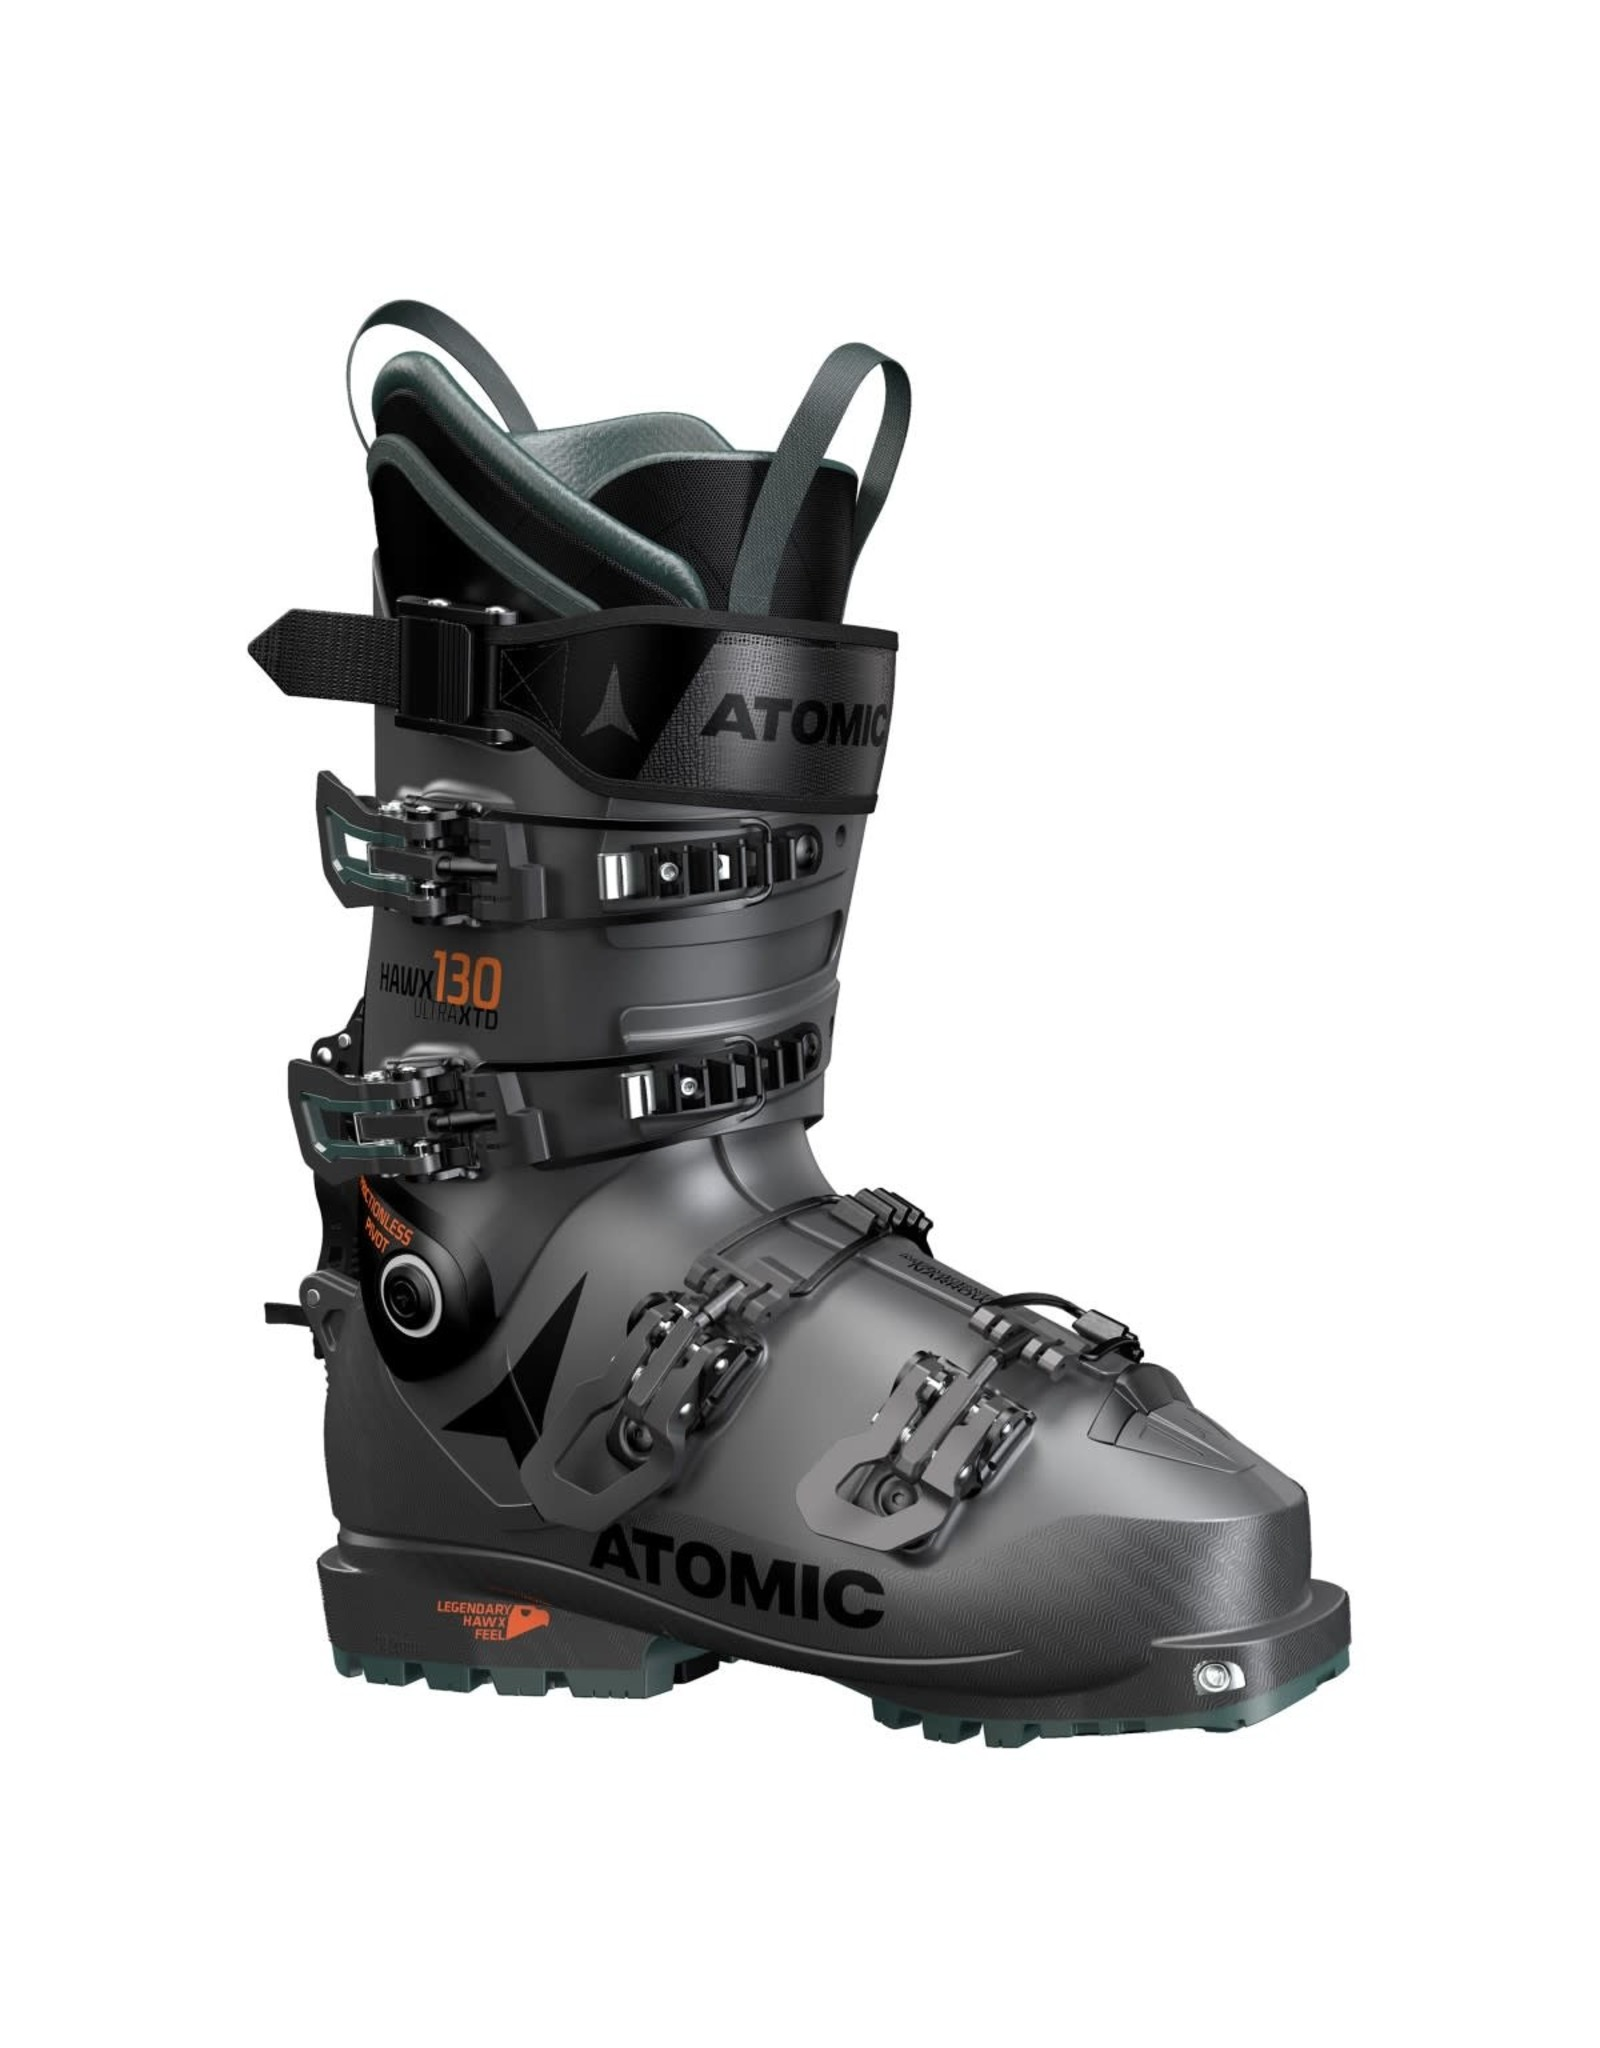 Atomic Atomic Hawx Ultra XTD 130 - Men